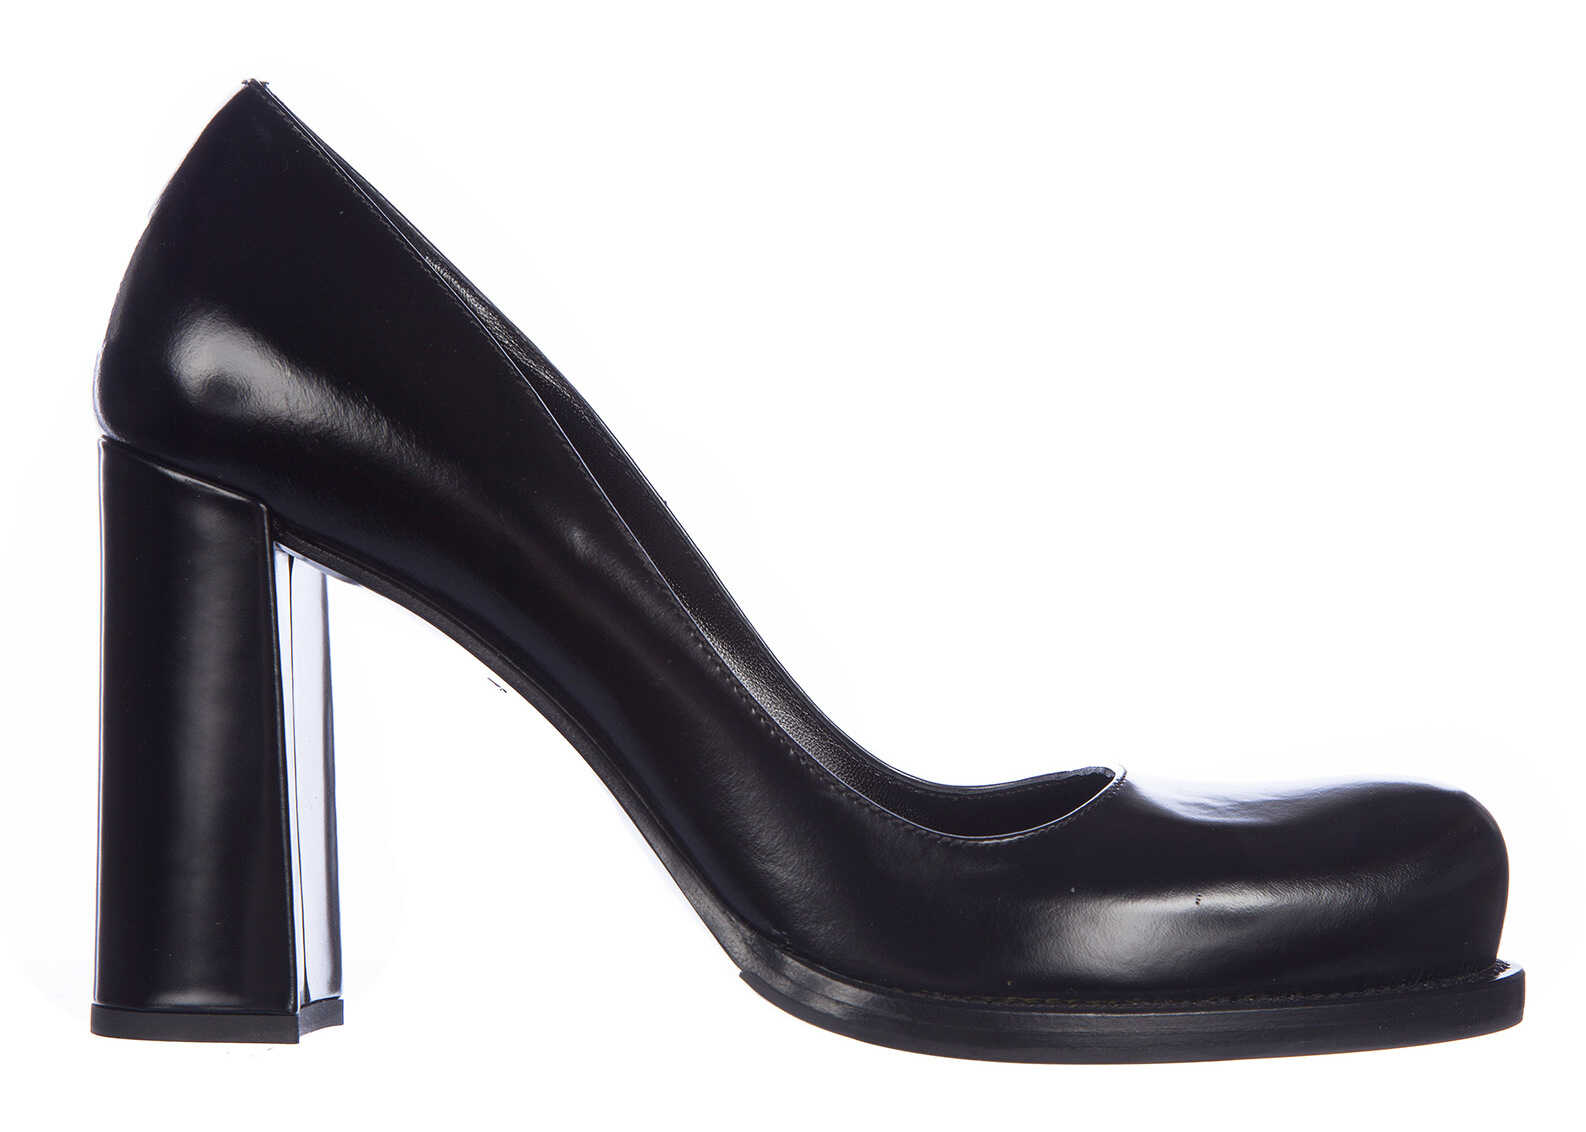 Prada Pumps High Heel Black